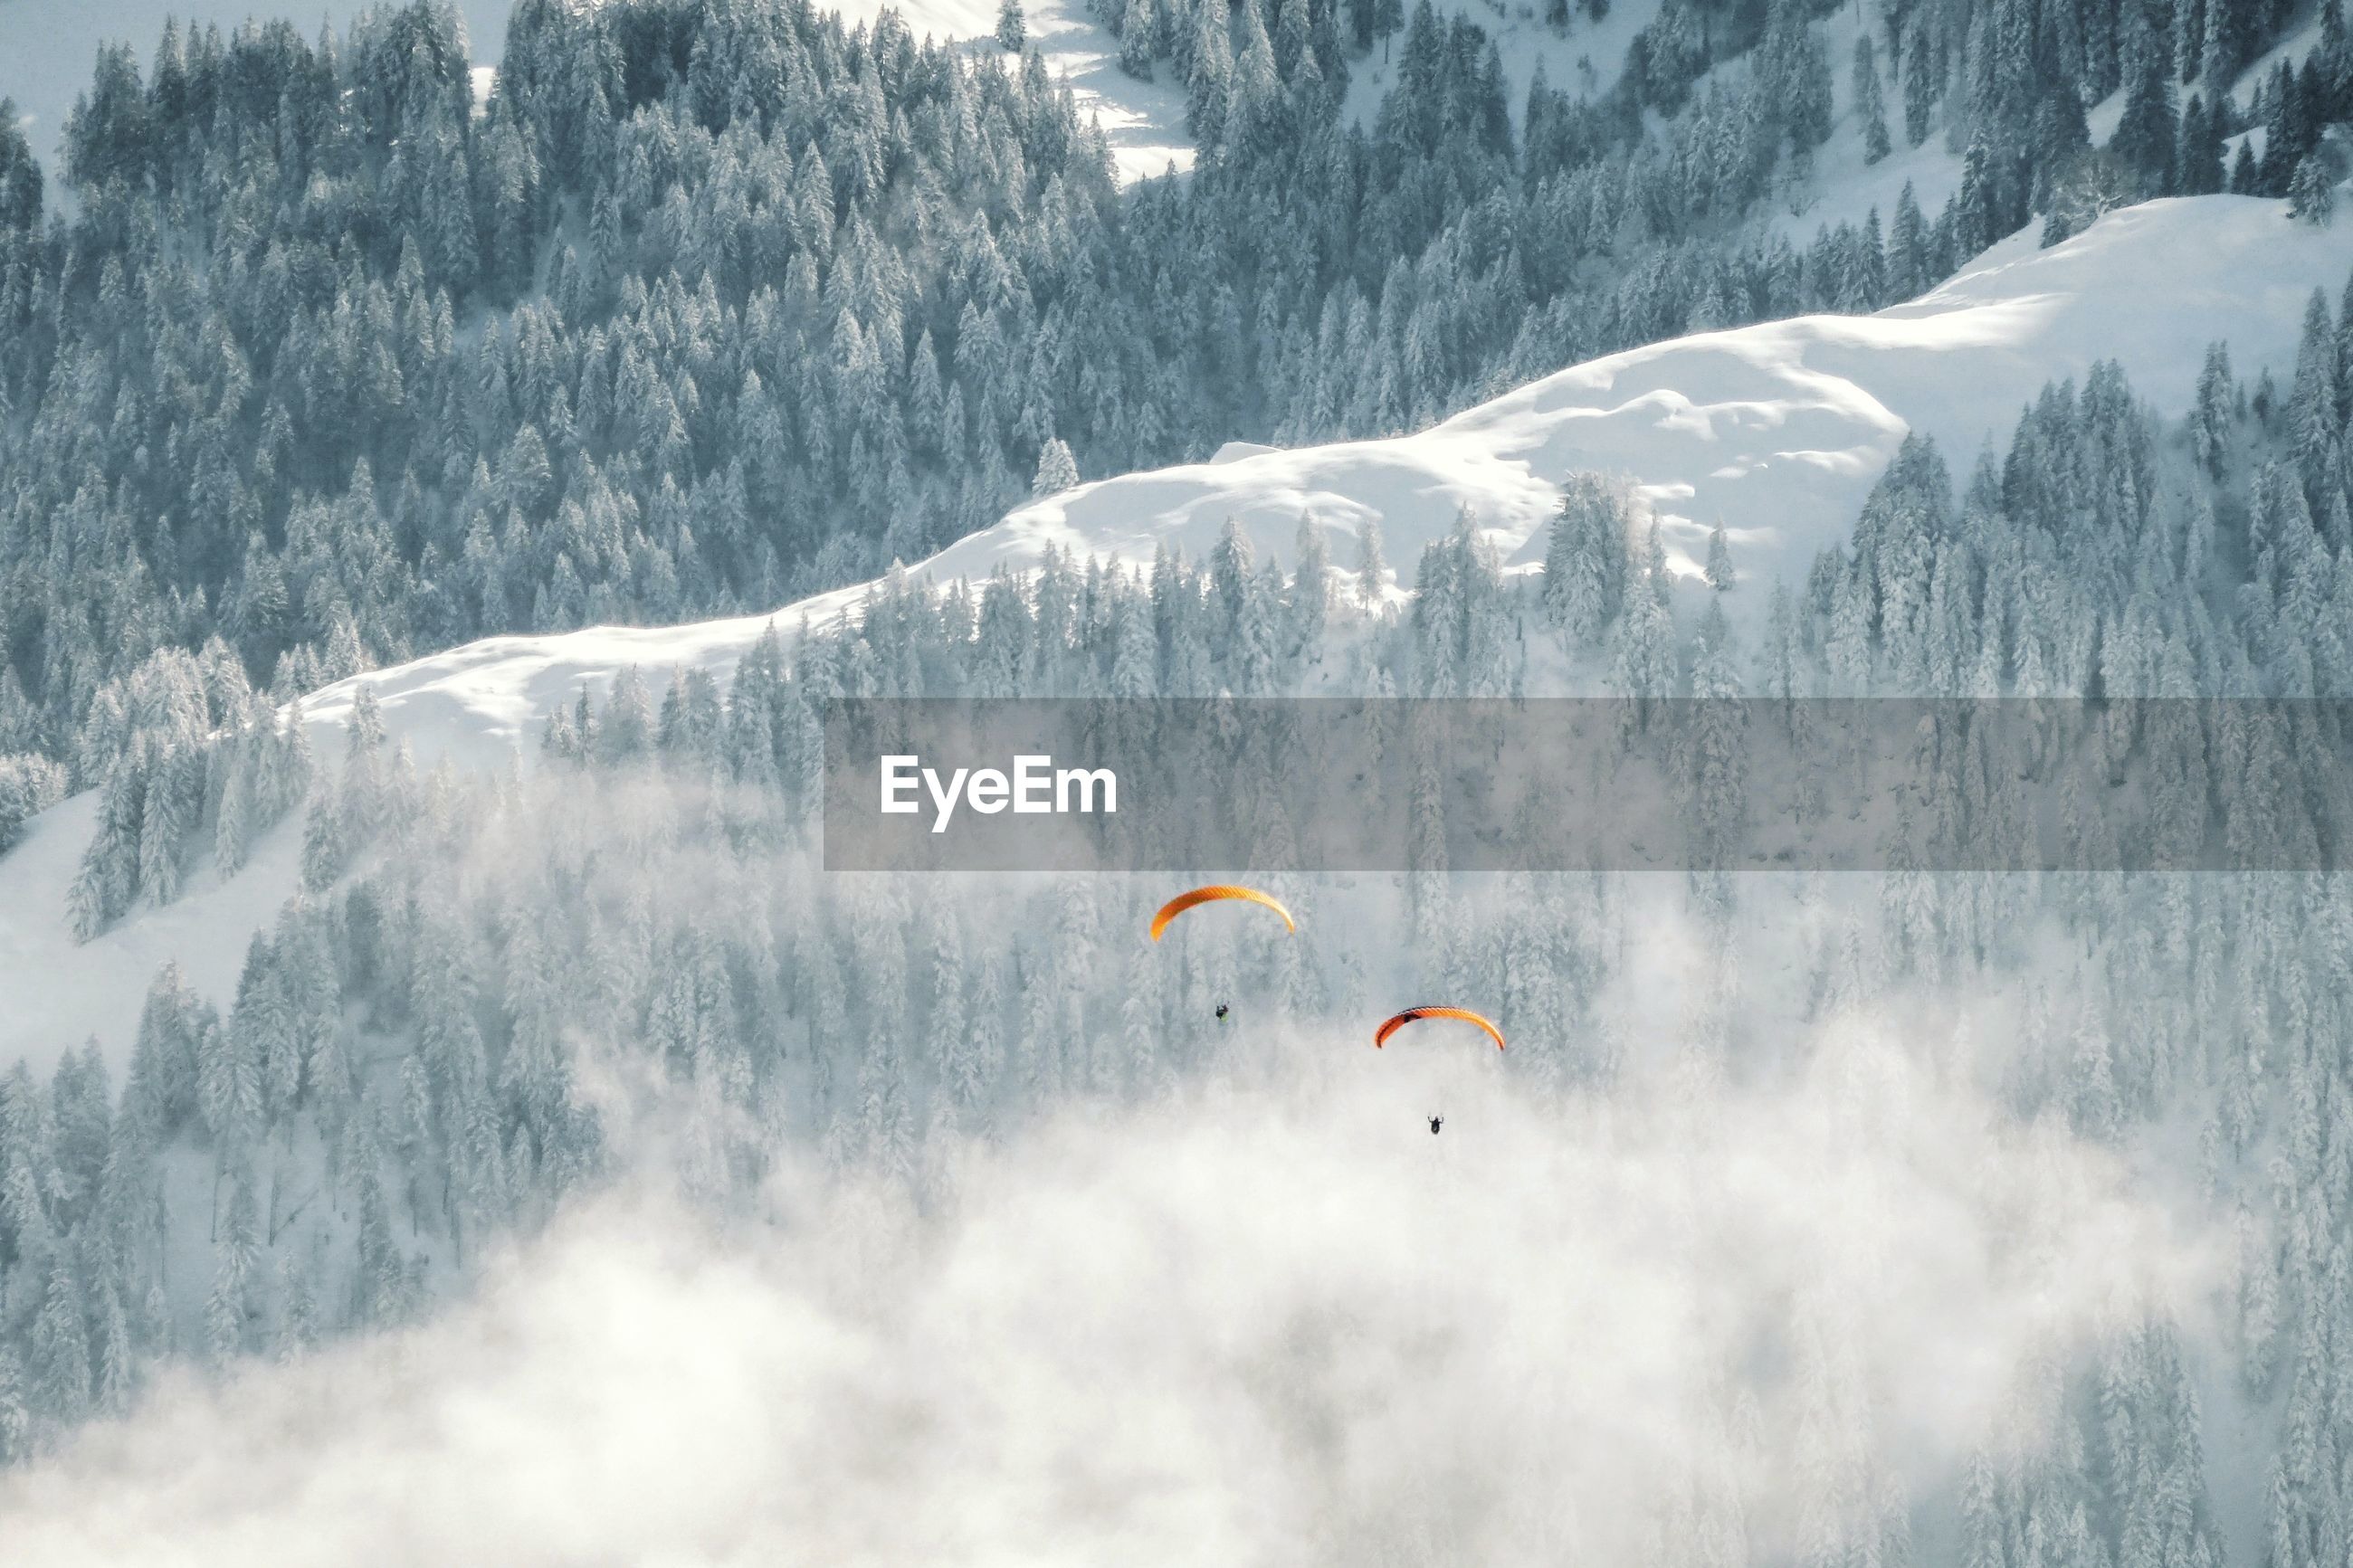 People flying over snowcapped mountain